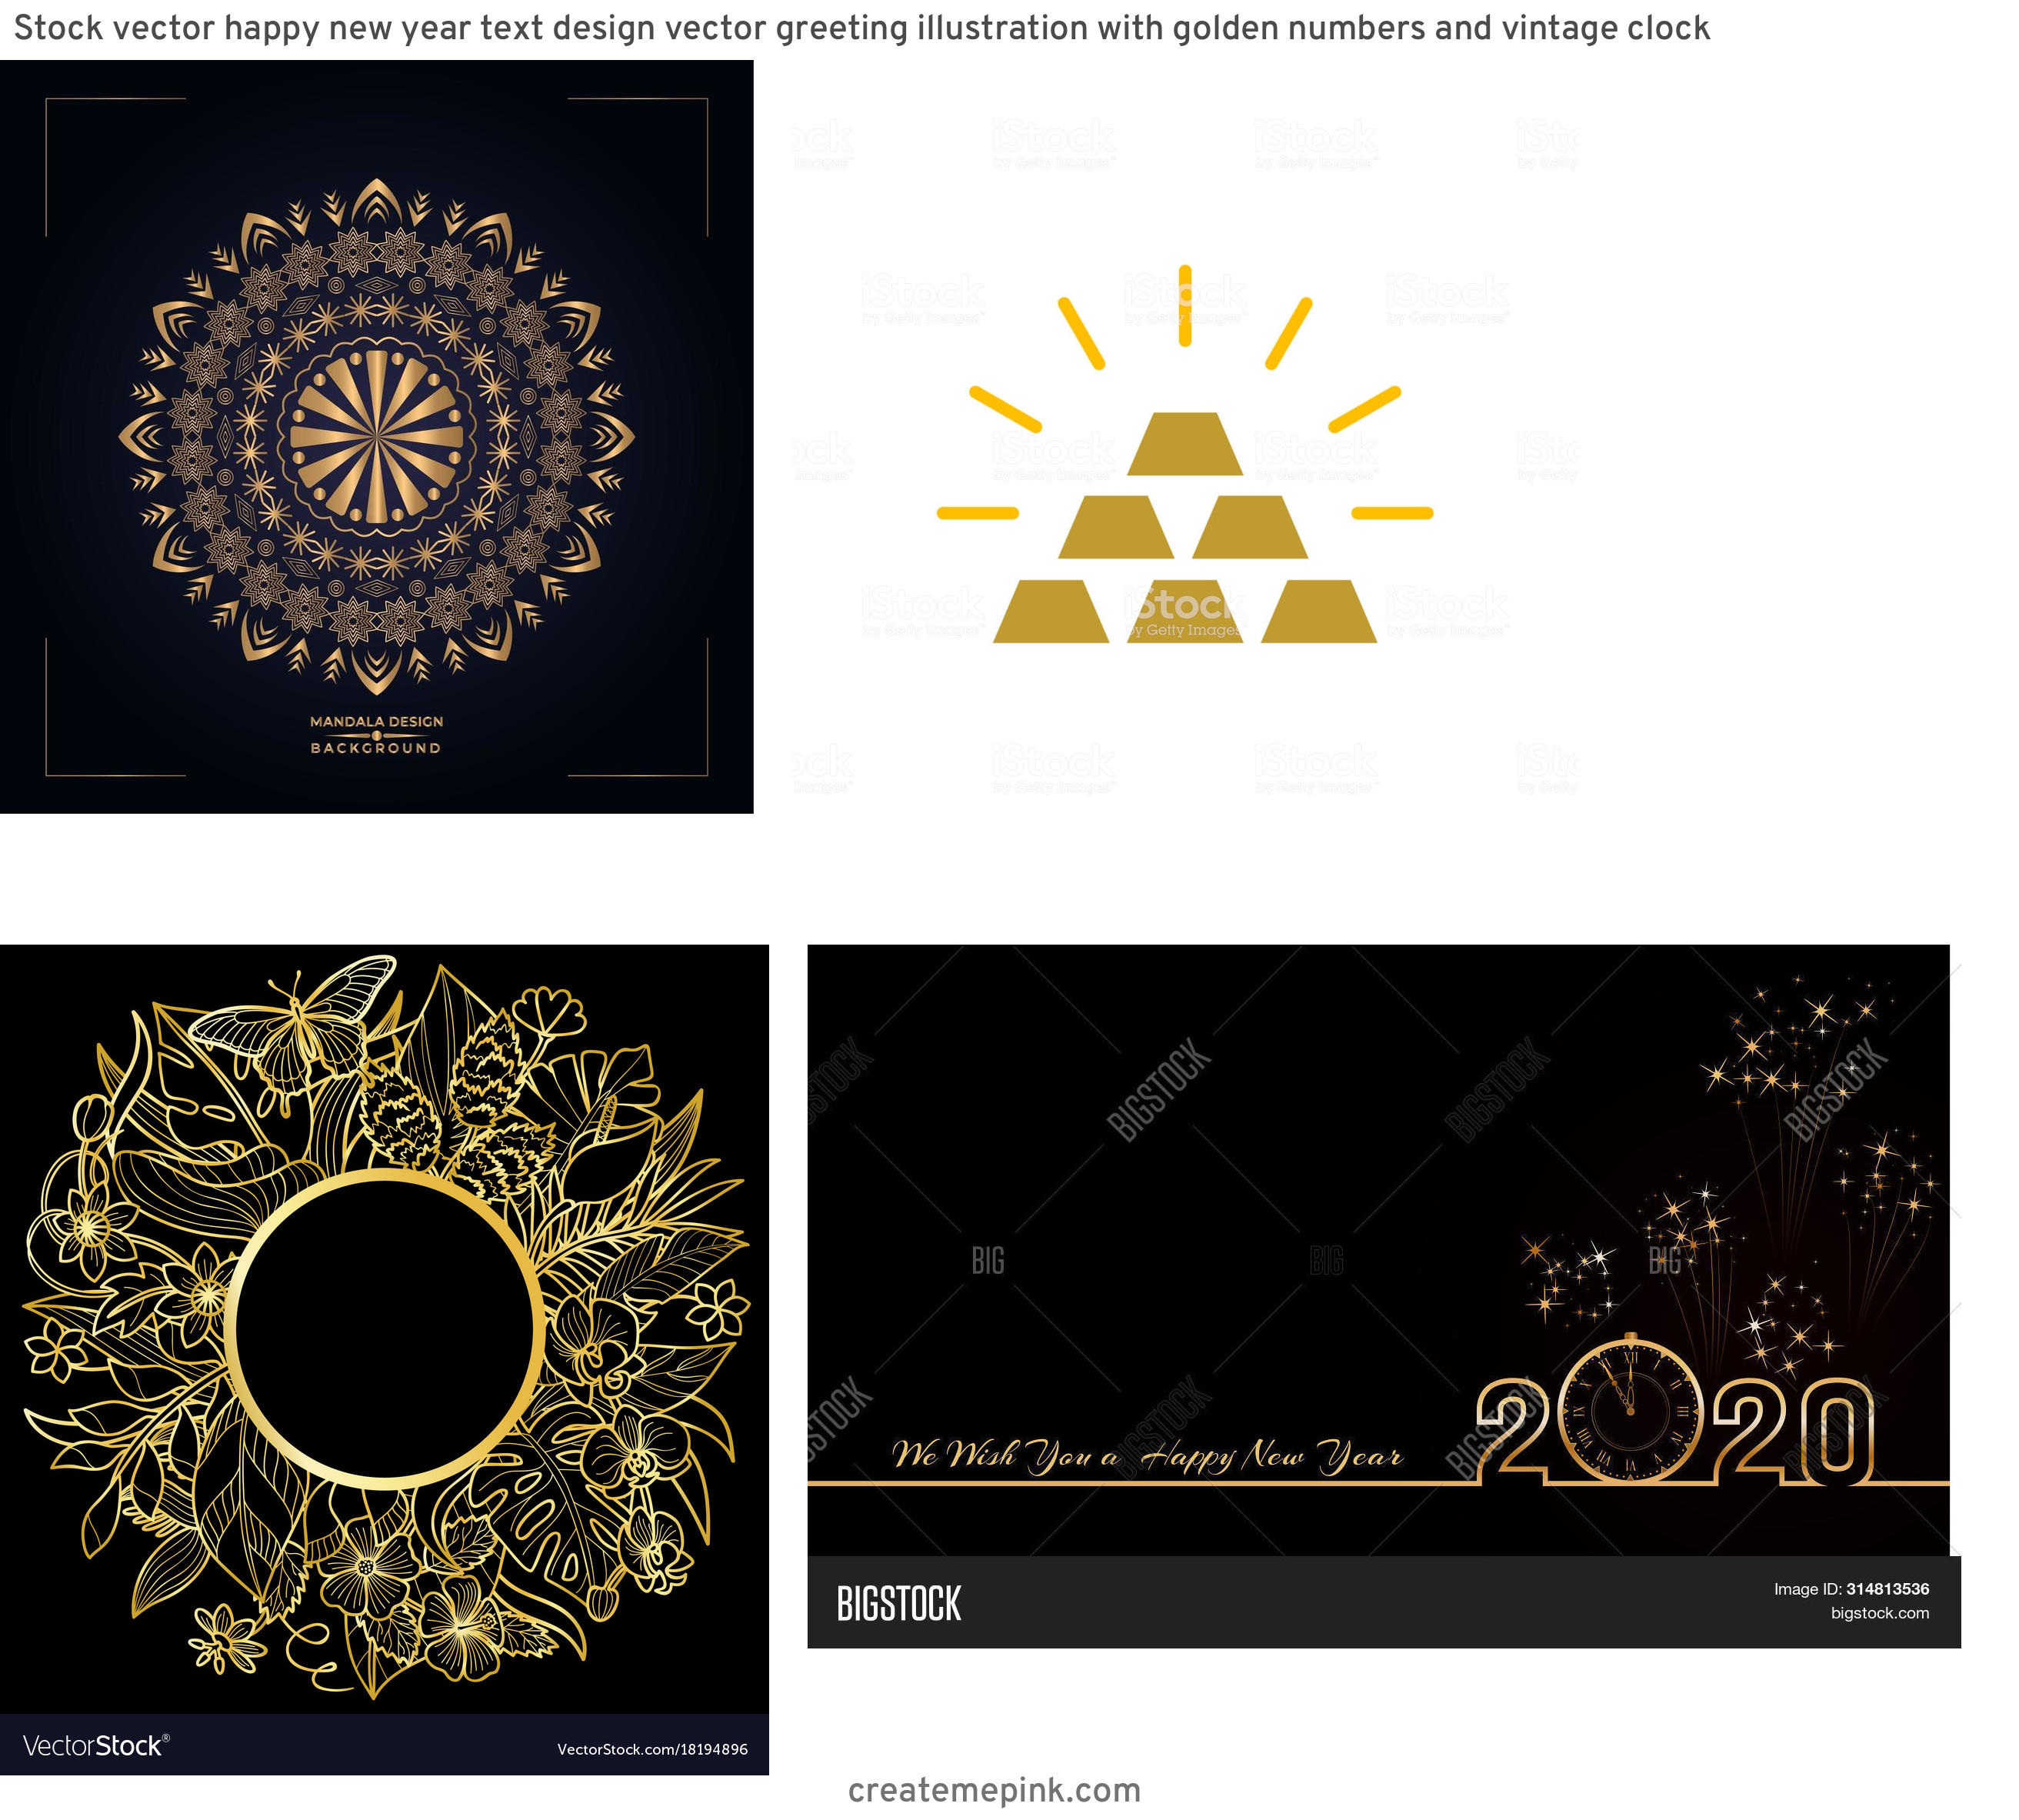 Gold Graphic Design Vectors: Stock Vector Happy New Year Text Design Vector Greeting Illustration With Golden Numbers And Vintage Clock